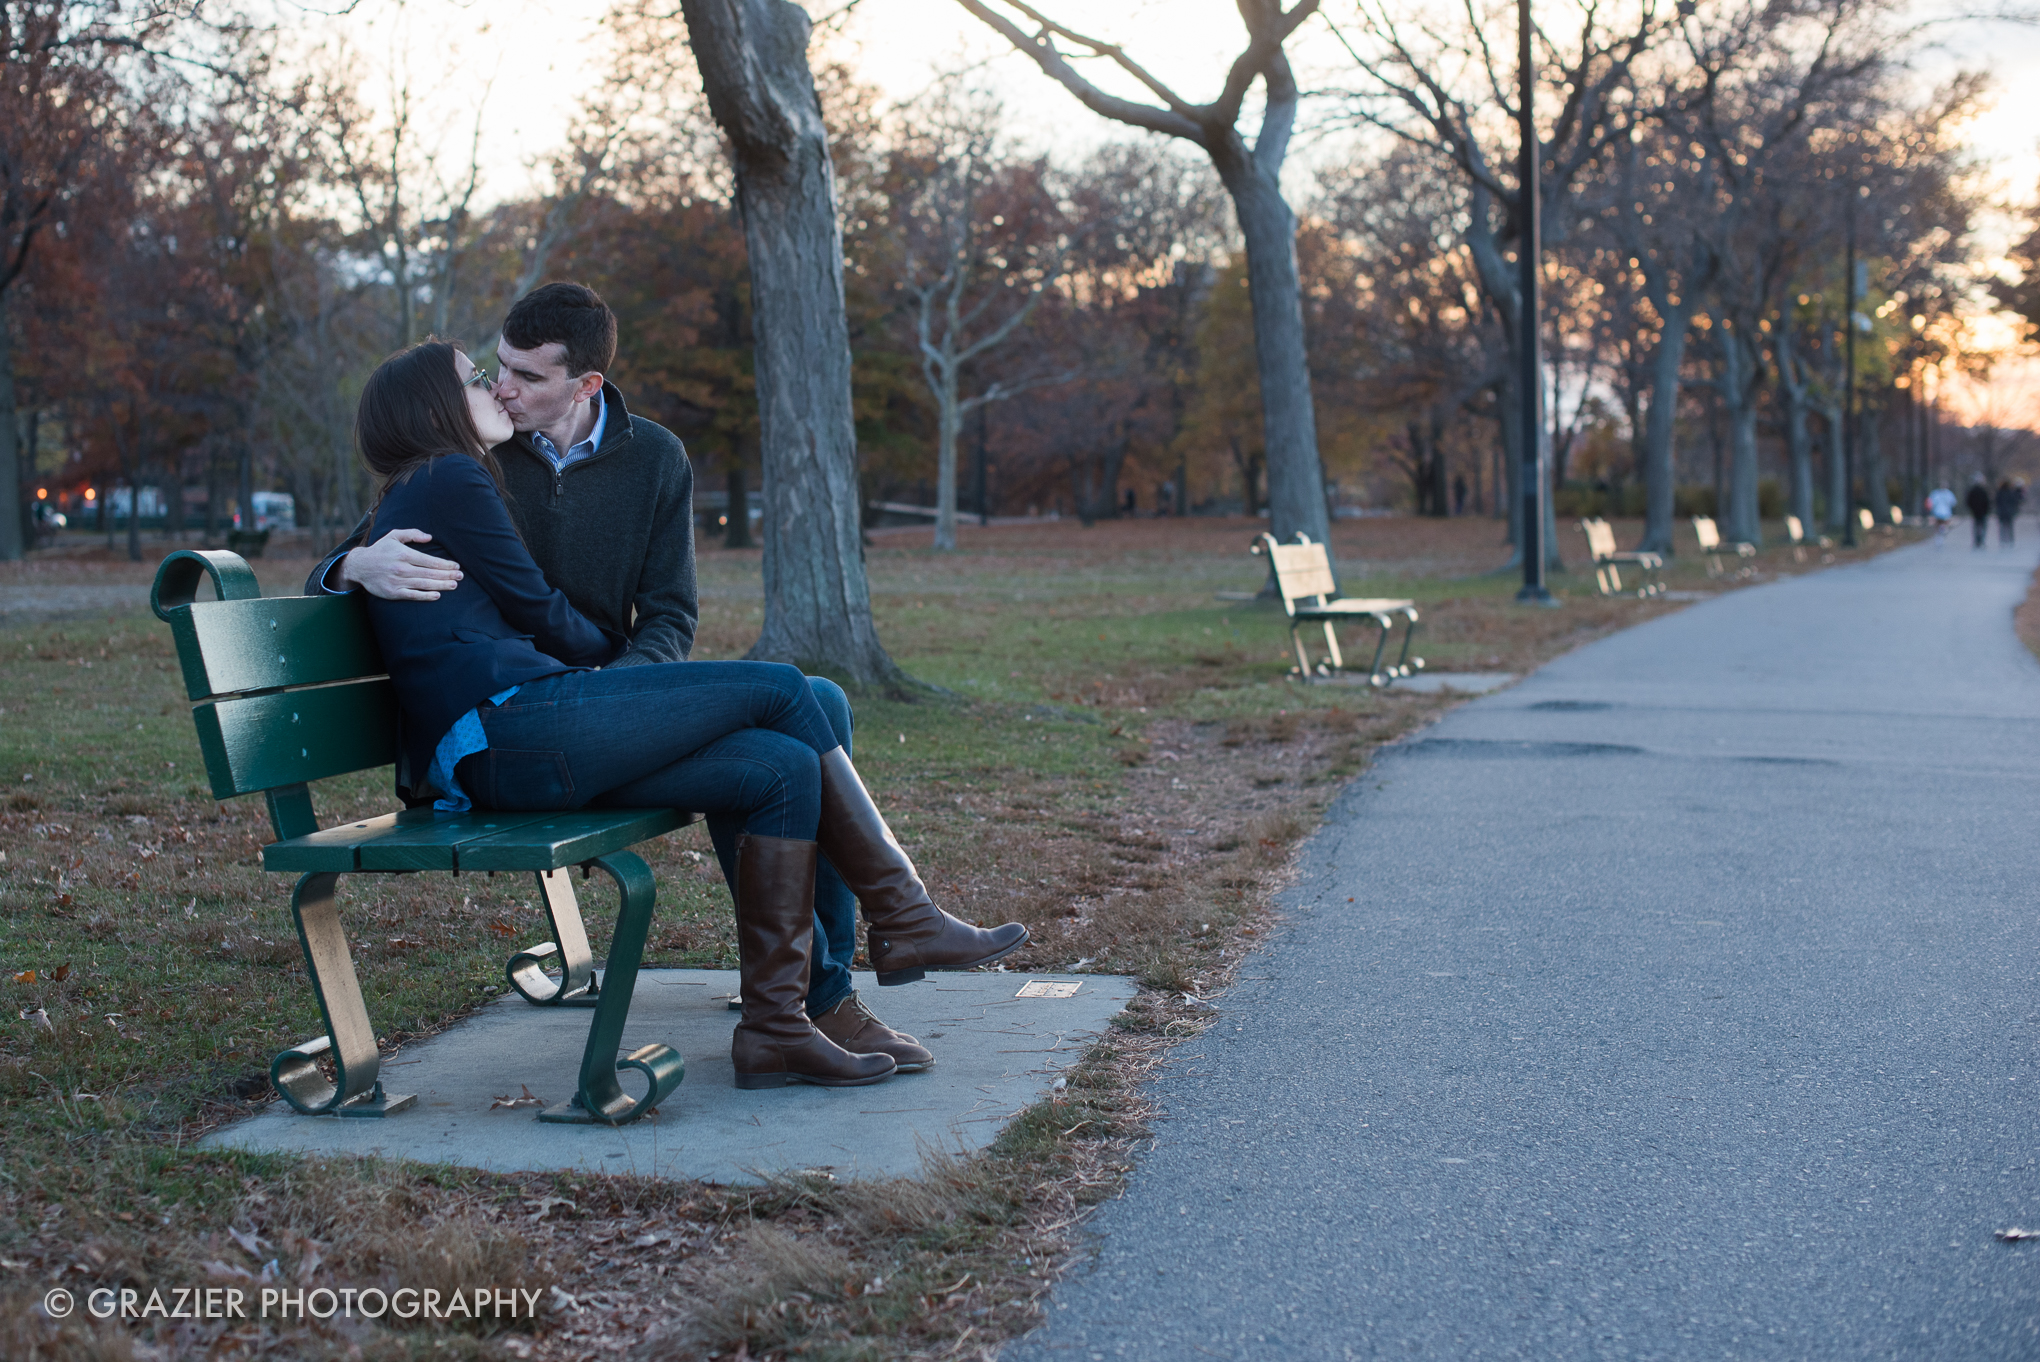 Grazier_Photography_Boston_Engagement_160430_132.jpg